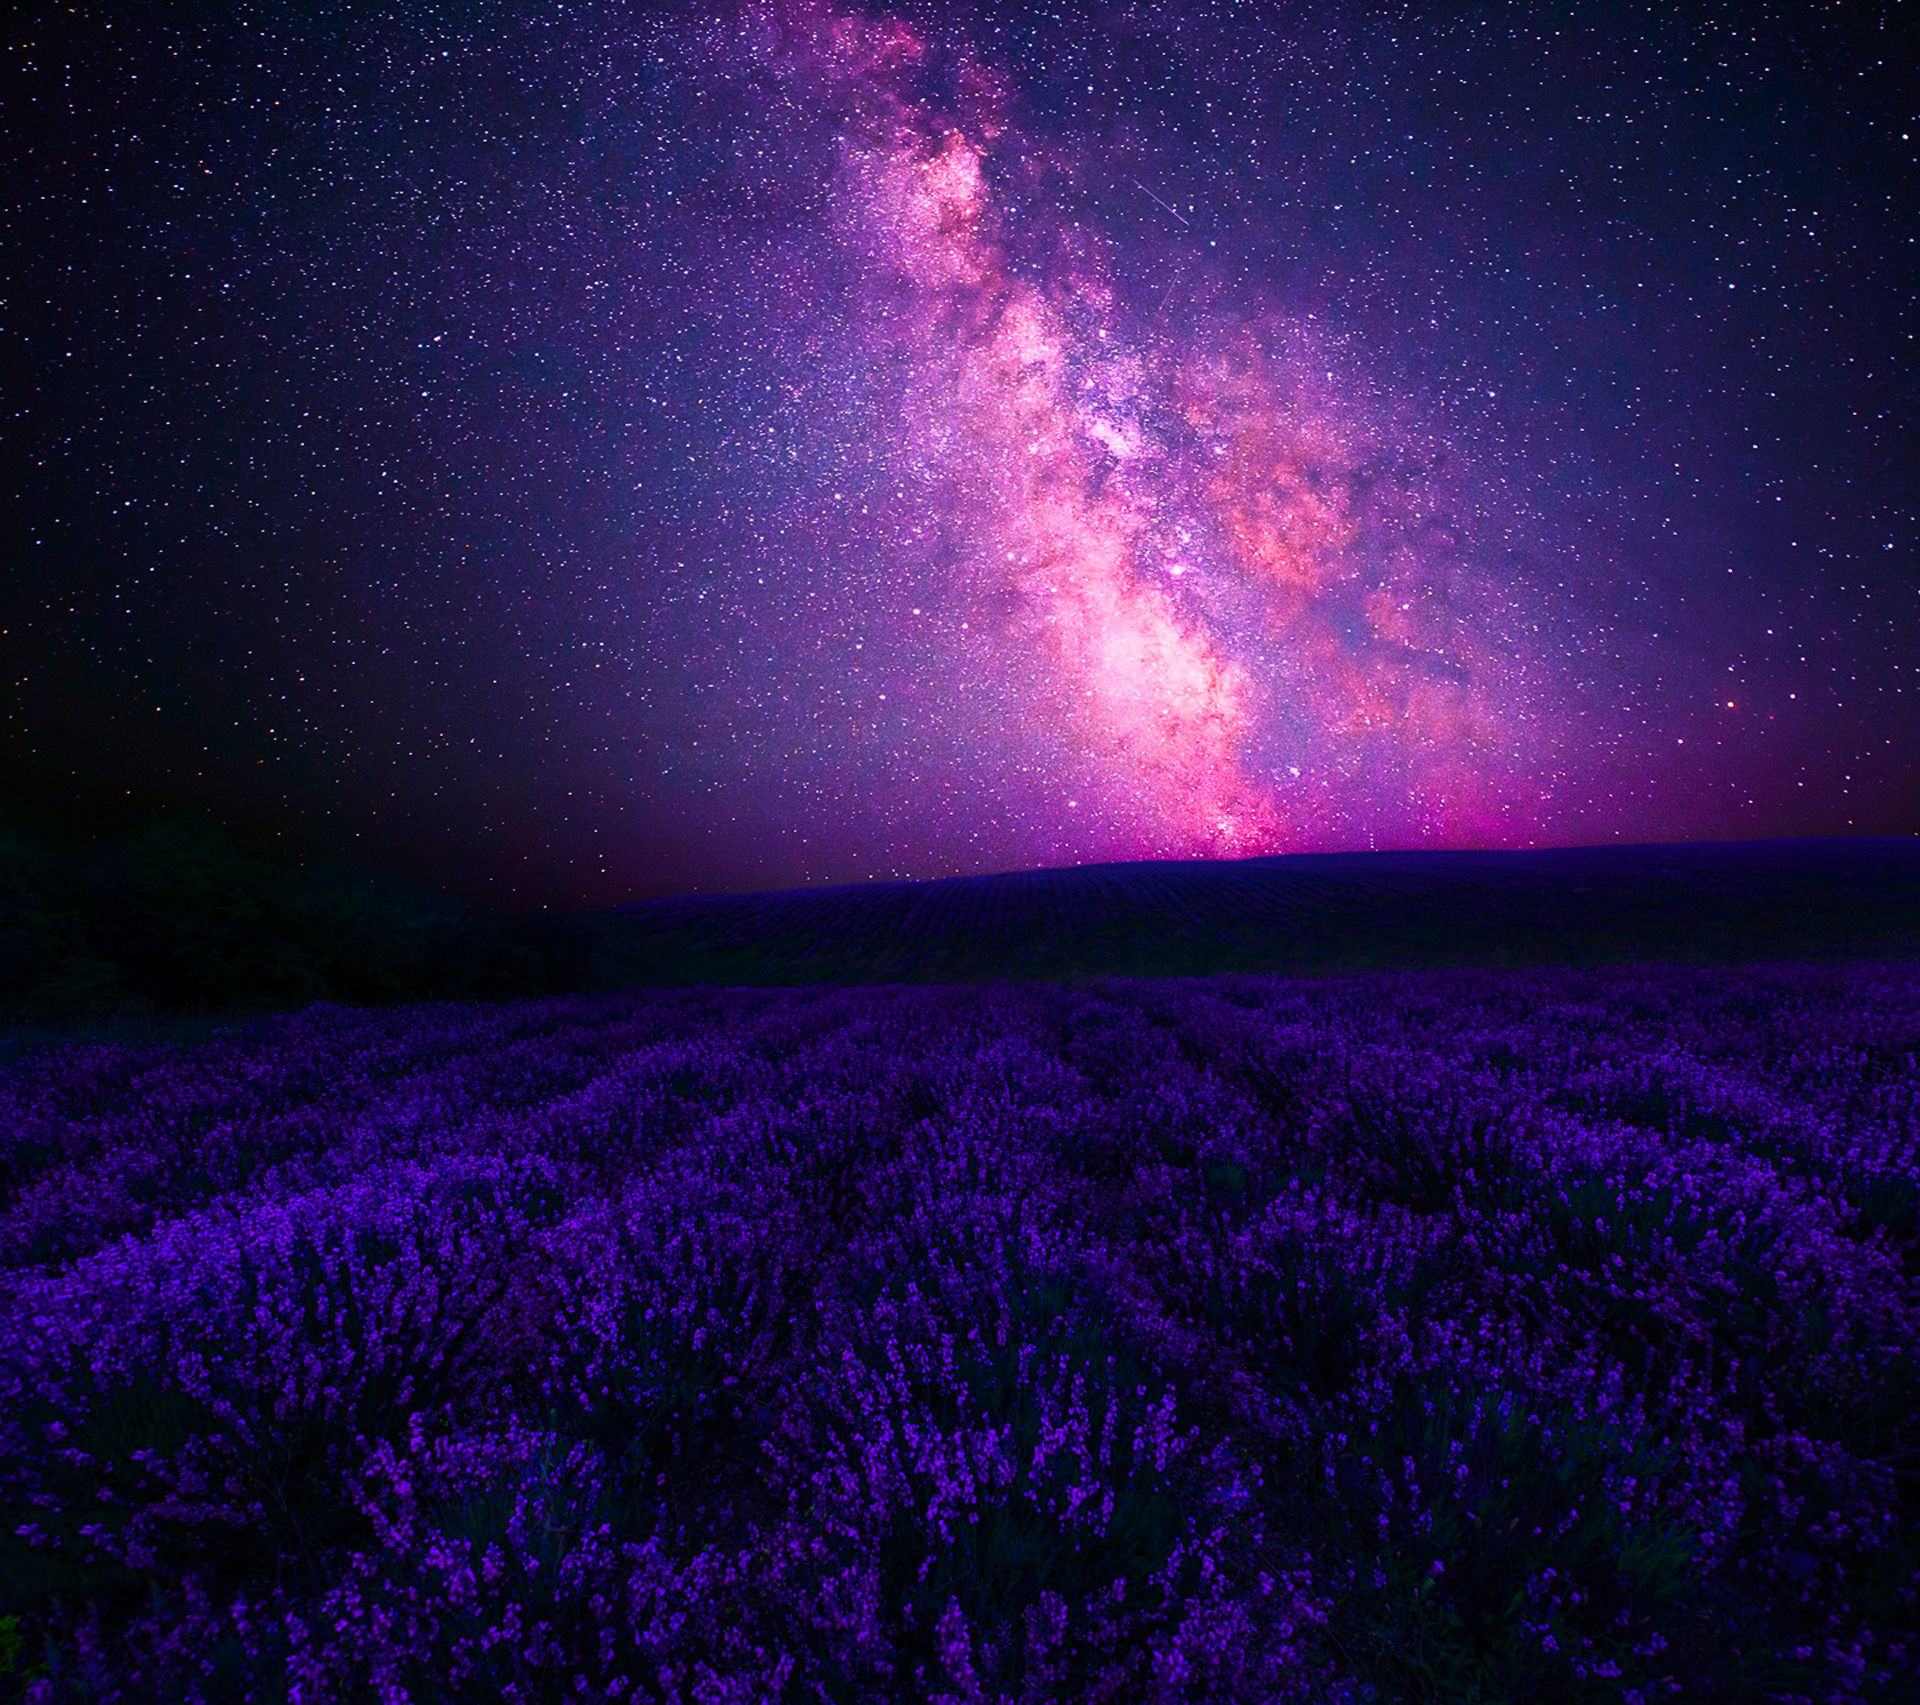 Purple Fantasy Computer Wallpapers Desktop Backgrounds 1920x1705 Id 688727 Sky Pictures Stars At Night Background Images